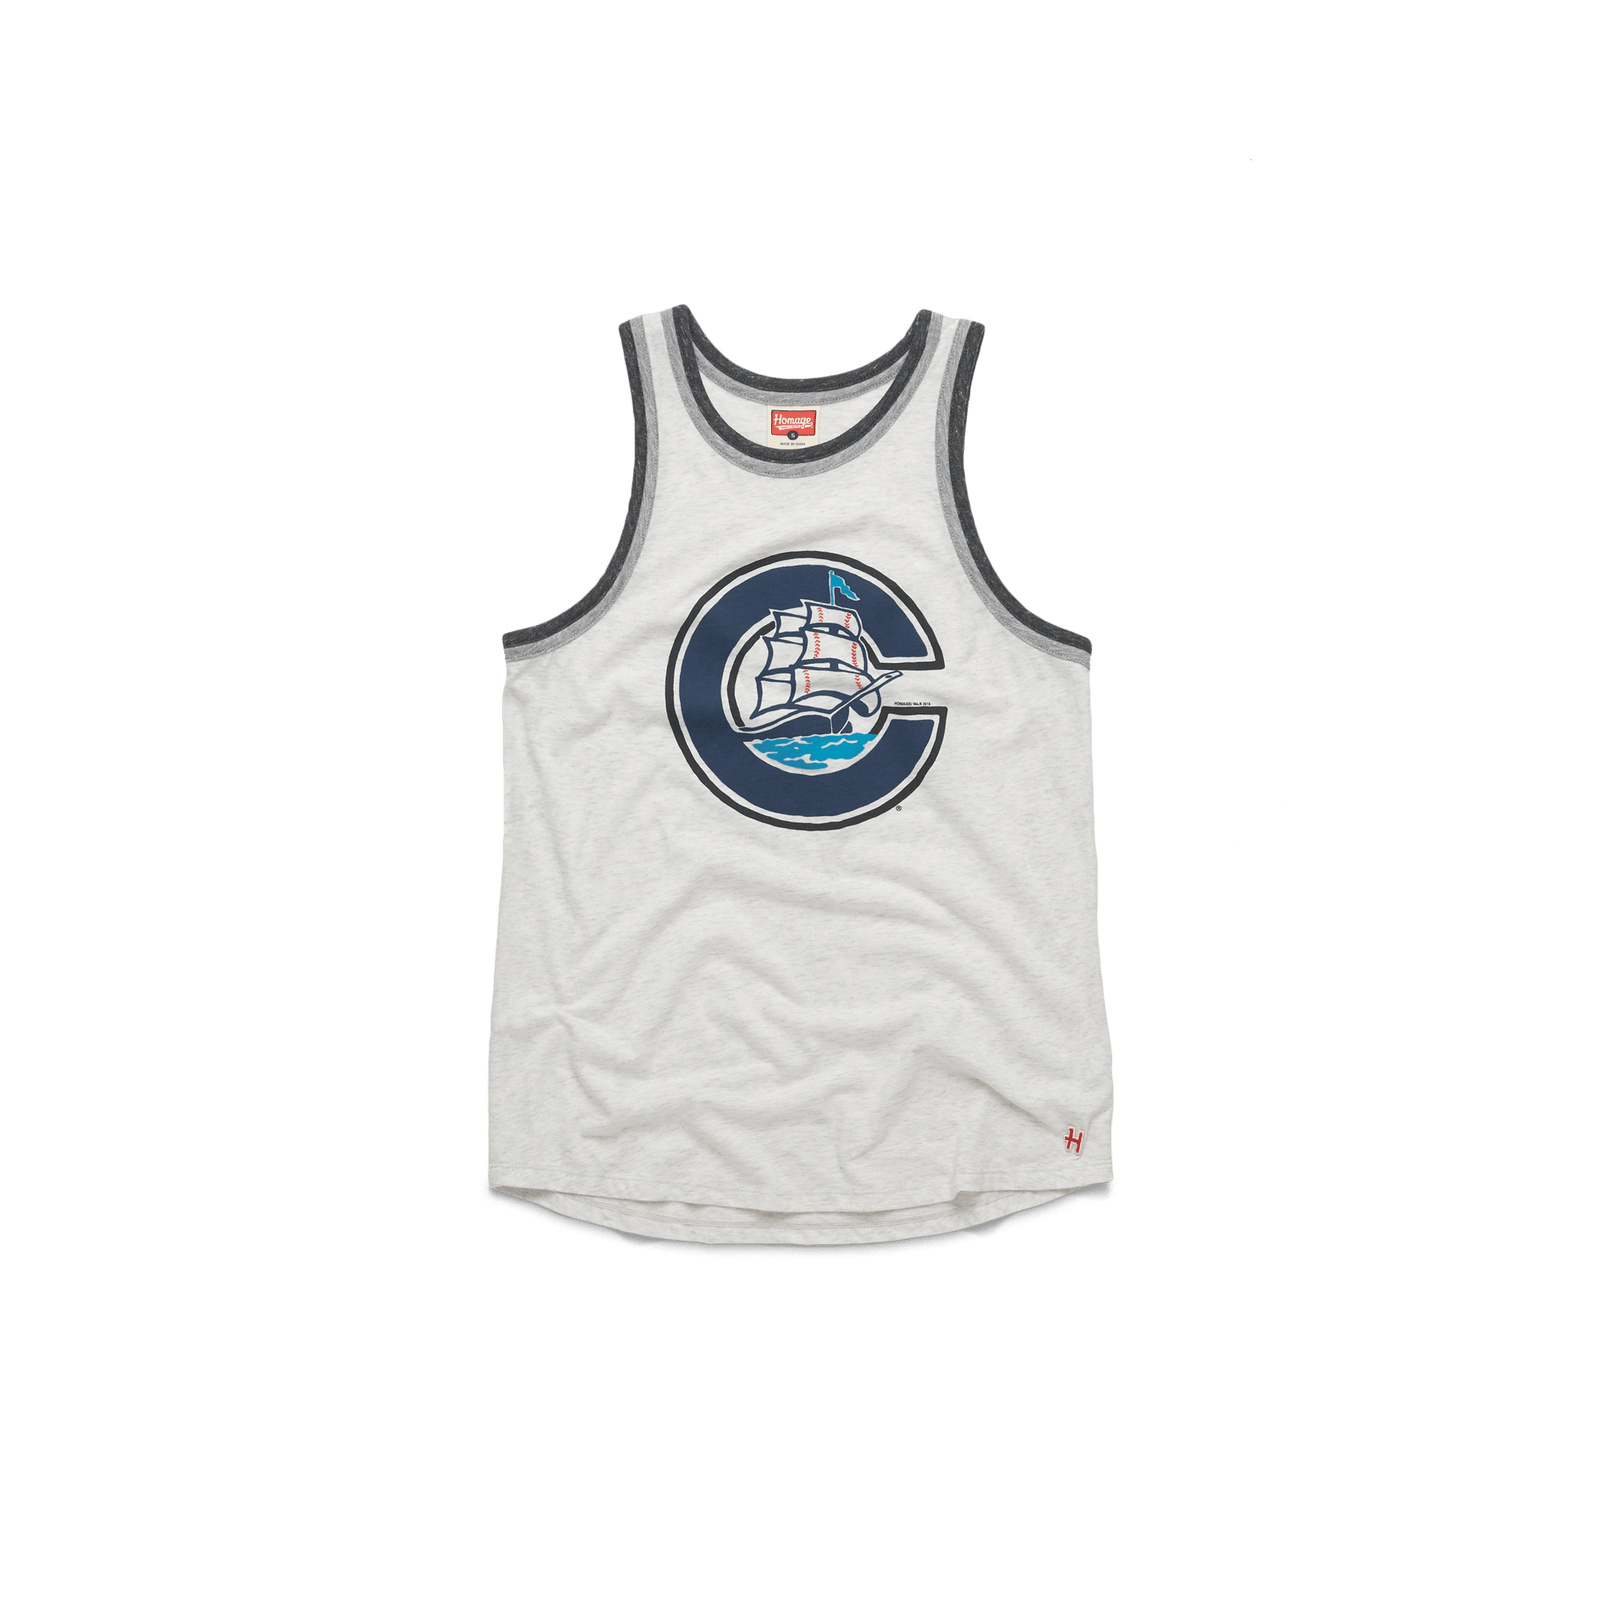 Women's Clippers Big C Tank Top